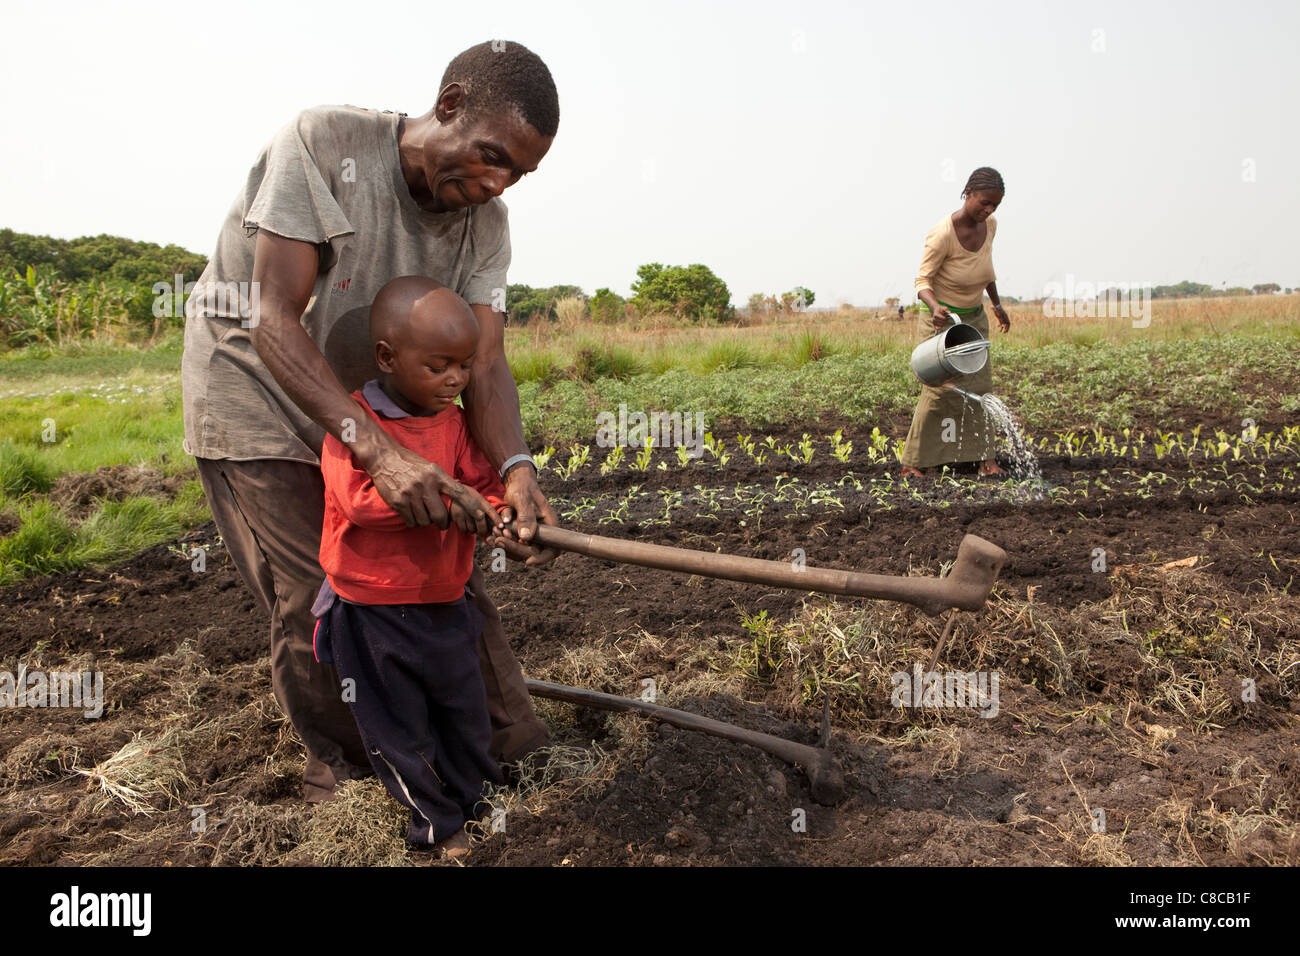 A farmer teaches his young son to hoe in Mongu, Zambia, Southern Africa. - Stock Image